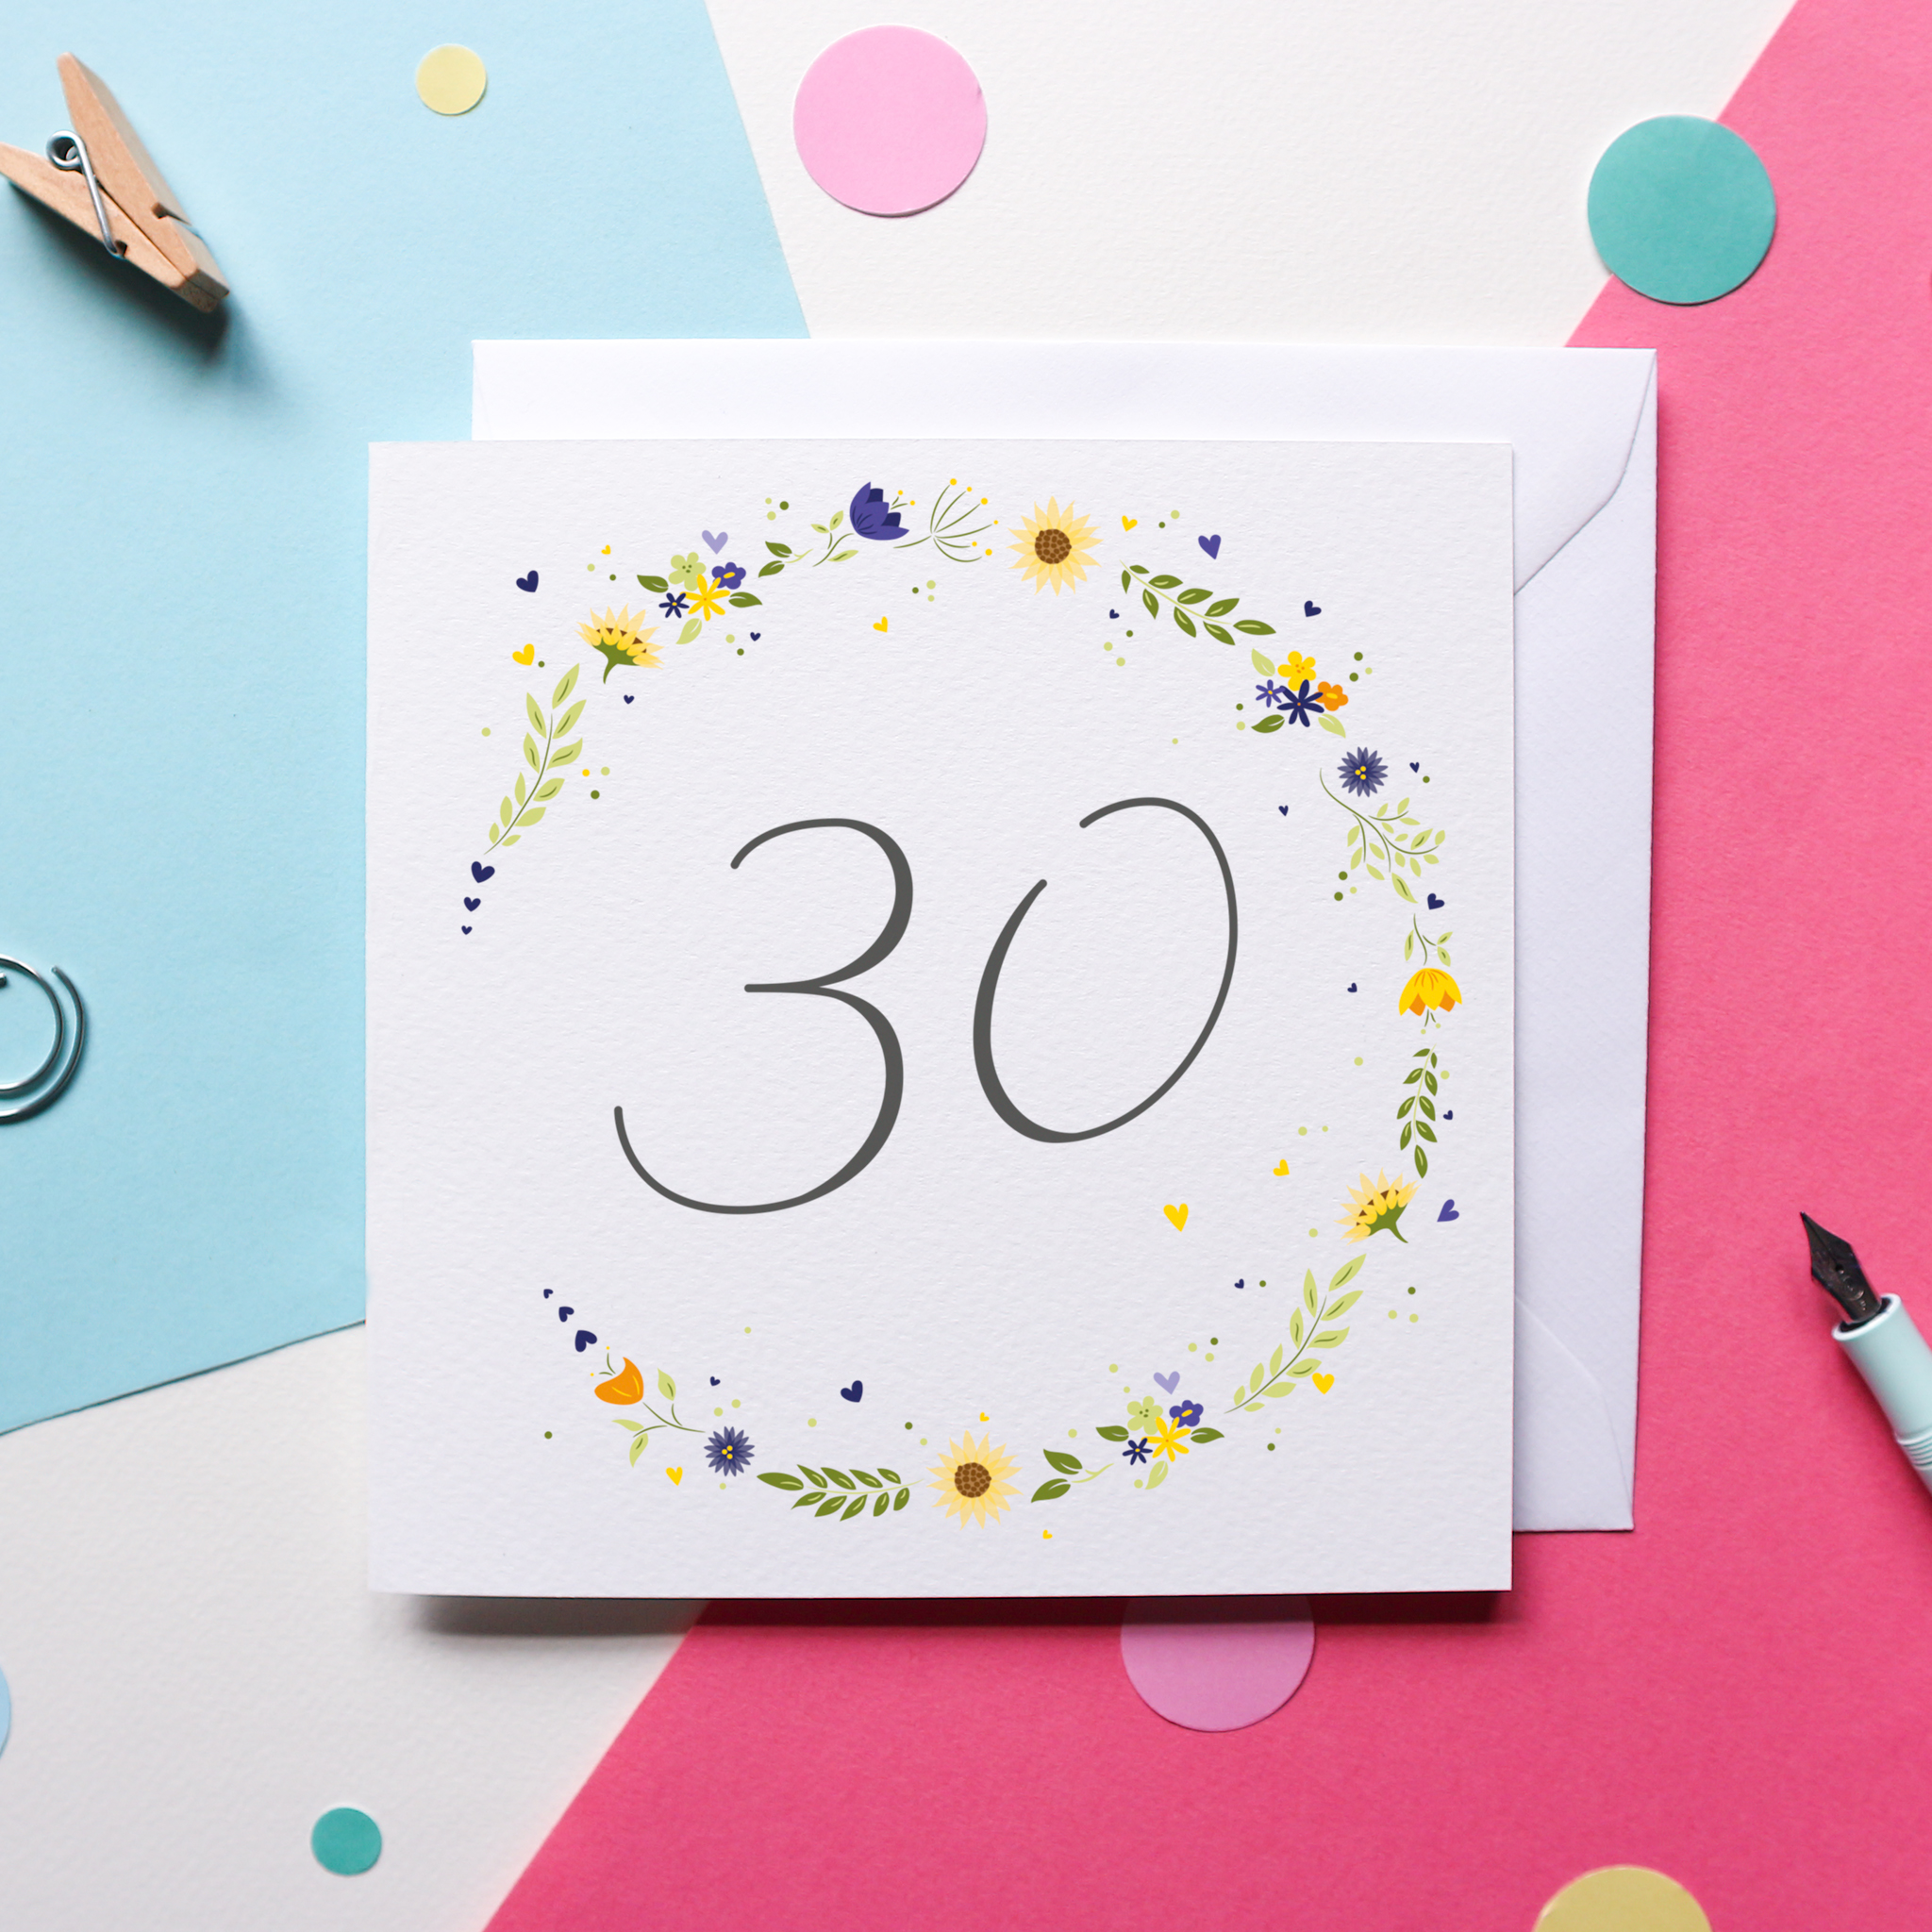 """A charming Birthday card that reads """"30"""" in hand drawn lettering in grey text against a white background, surrounded by a circle of Yellow and blue flowers. The card sits against a white envelope and a blue and pink background with bright confetti, a pen and some paper clips."""